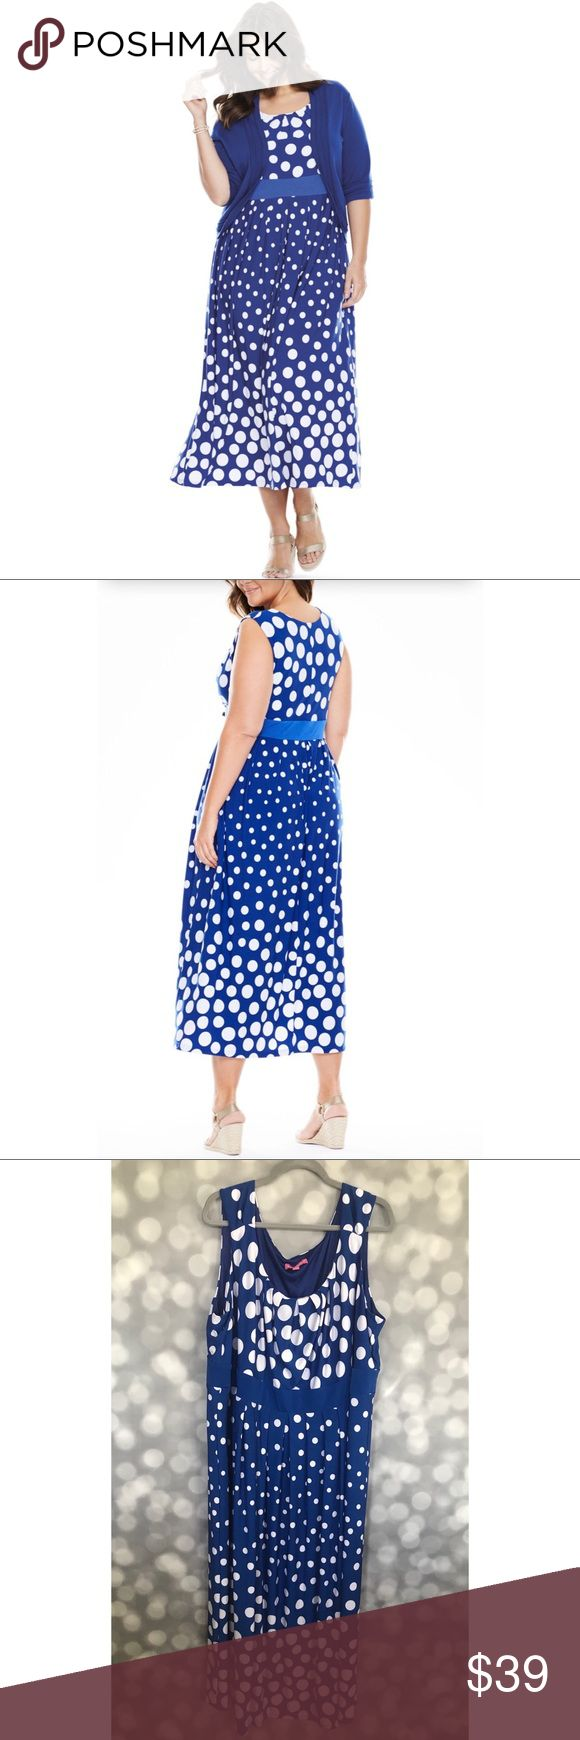 Woman Within Polka Dot Maxi Dress Woman Within Polka Dot Maxi Dress  Blue with White Polka Dots  Size 3X (Runs Large)  Ruched Neckline  Banded Waist  Sleeveless (shrug in stock Photo NOT Included) Woman Within Dresses Maxi